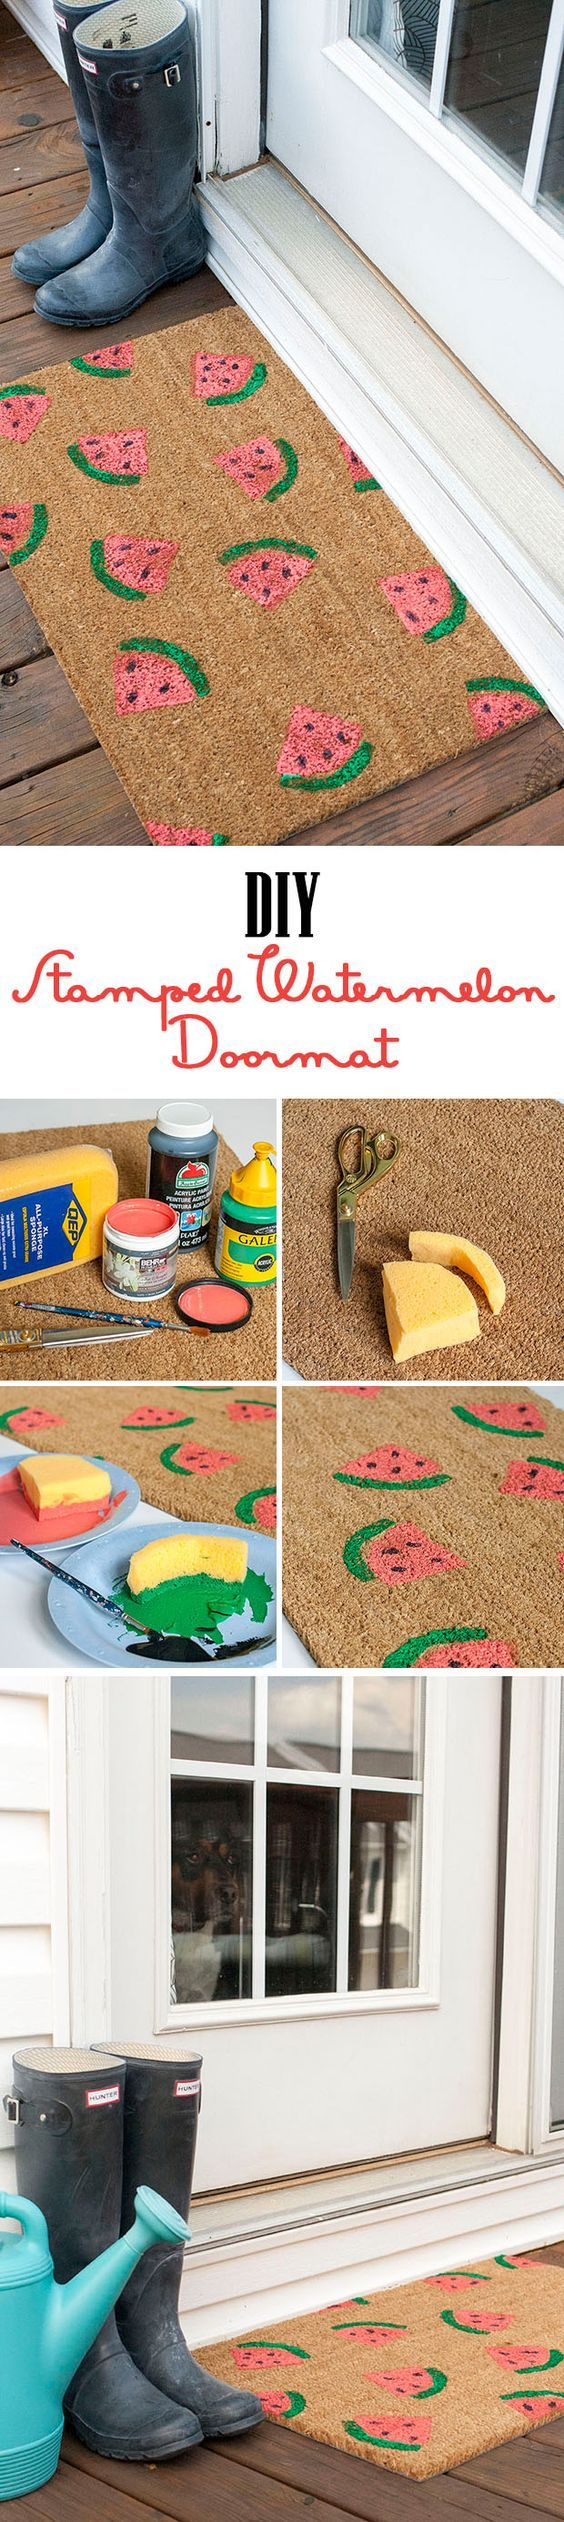 Welcome Summer with a DIY Stamped Watermelon Doormat  How To Do It!